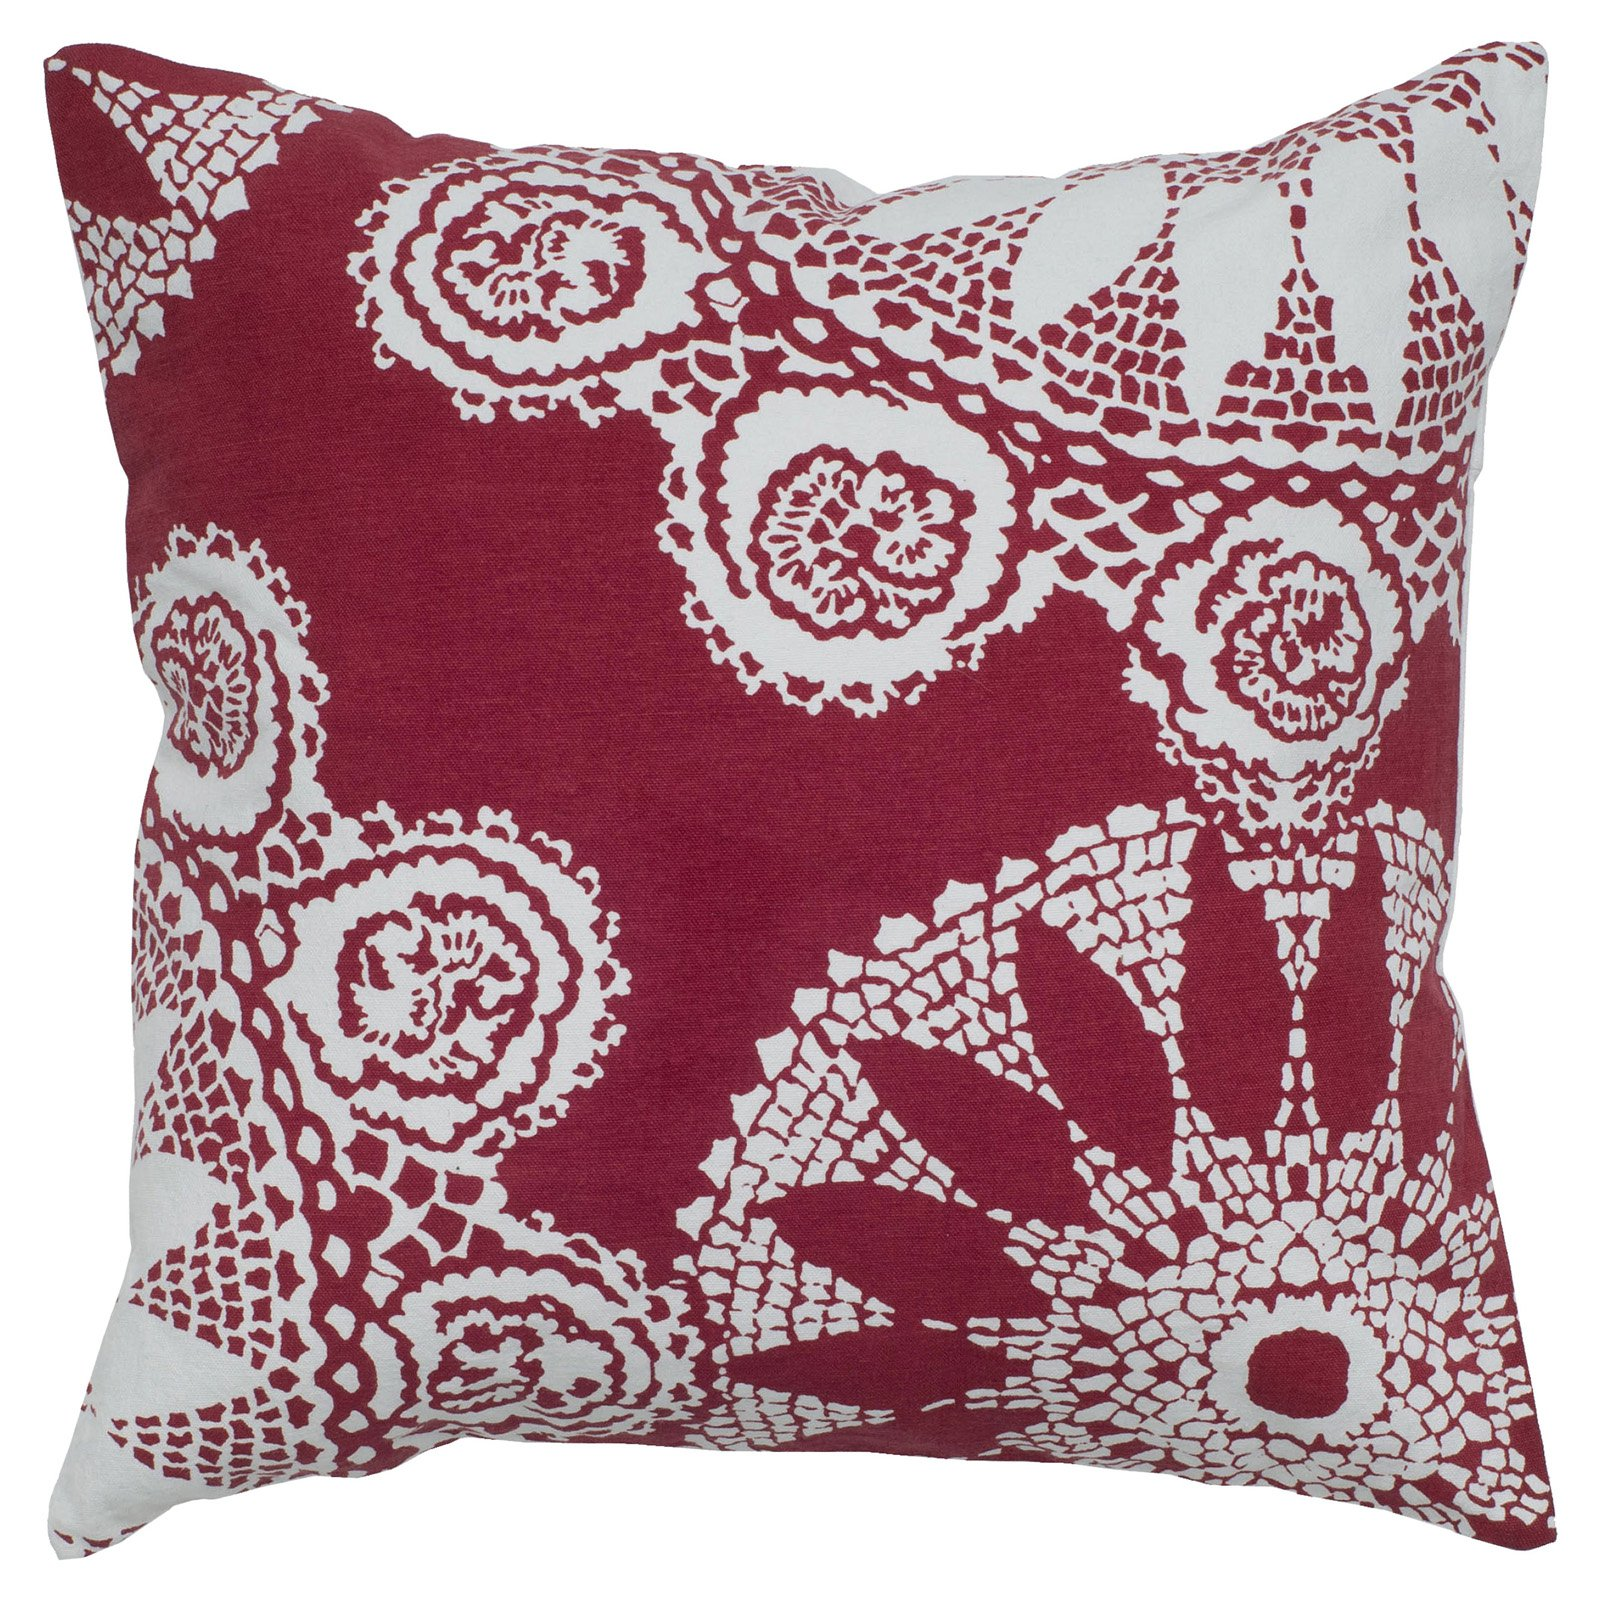 """Rizzy Home medallion18"""" x 18""""Cotton decorative filled pillow"""